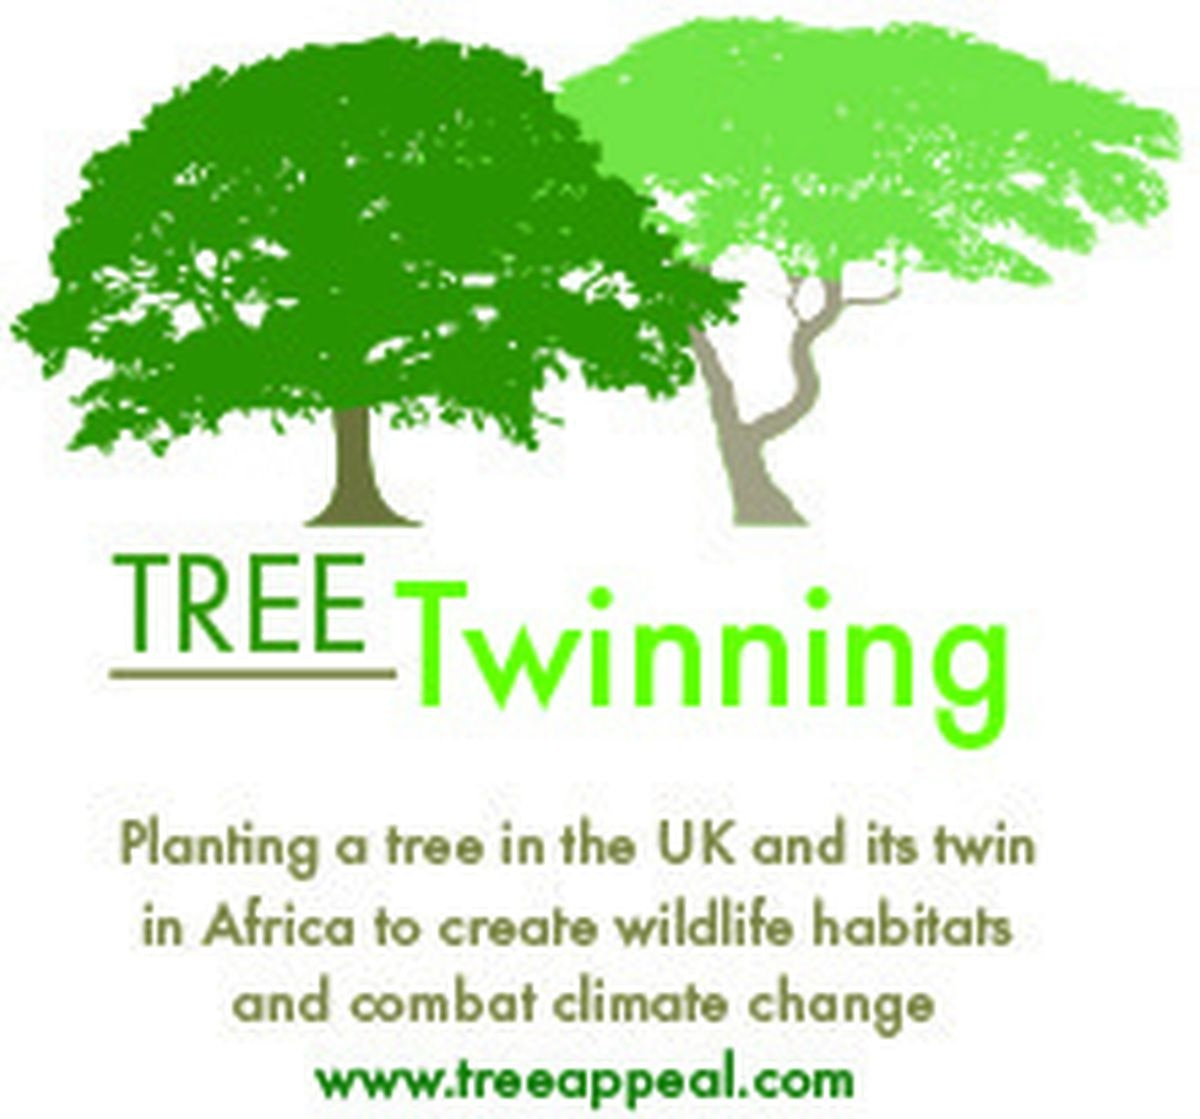 Landowner Products Ltd is working with the Tree Appeal company